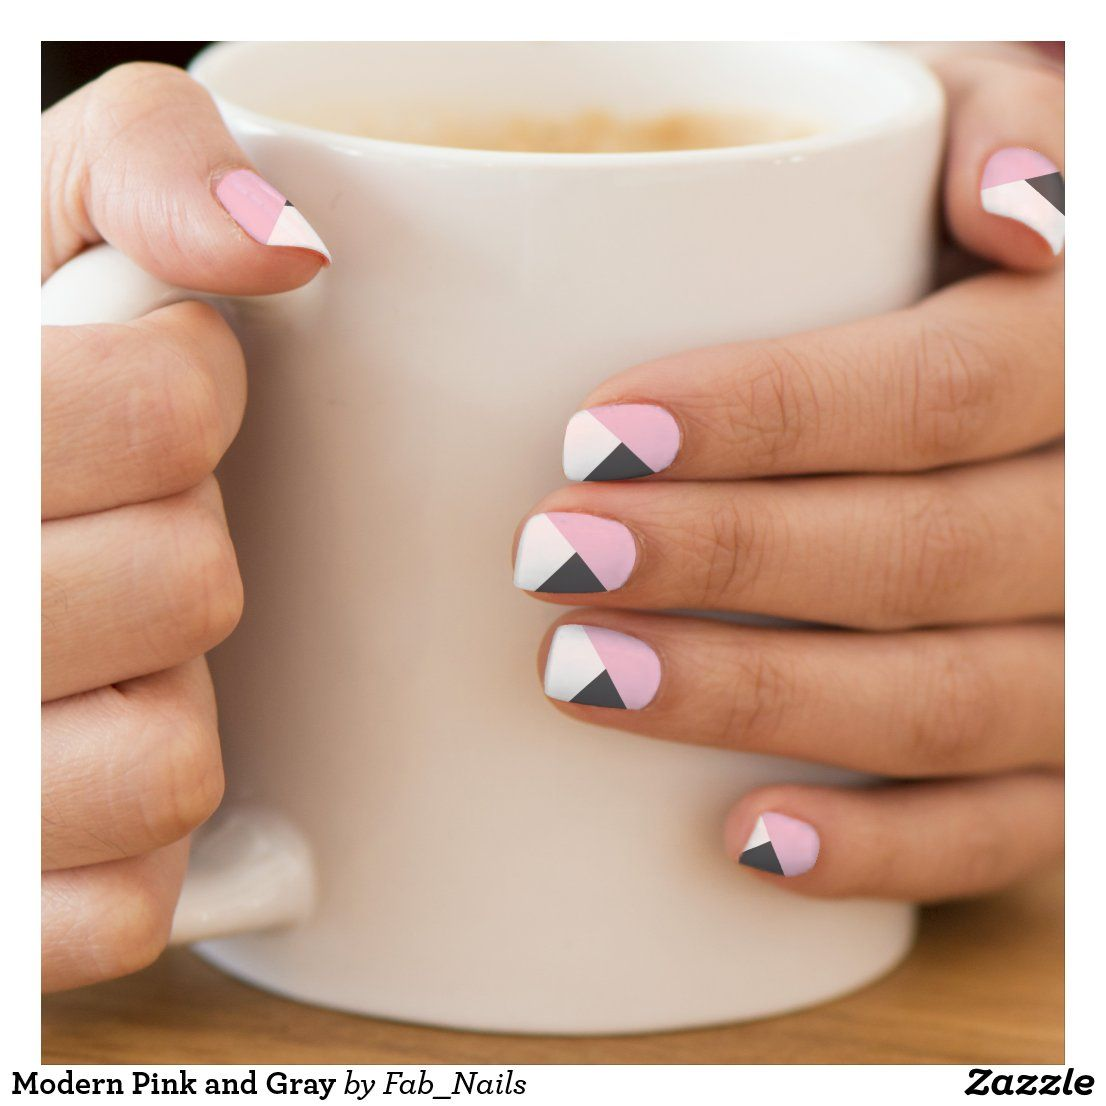 Modern Pink and Gray Minx Nail Wraps | Zazzle.com